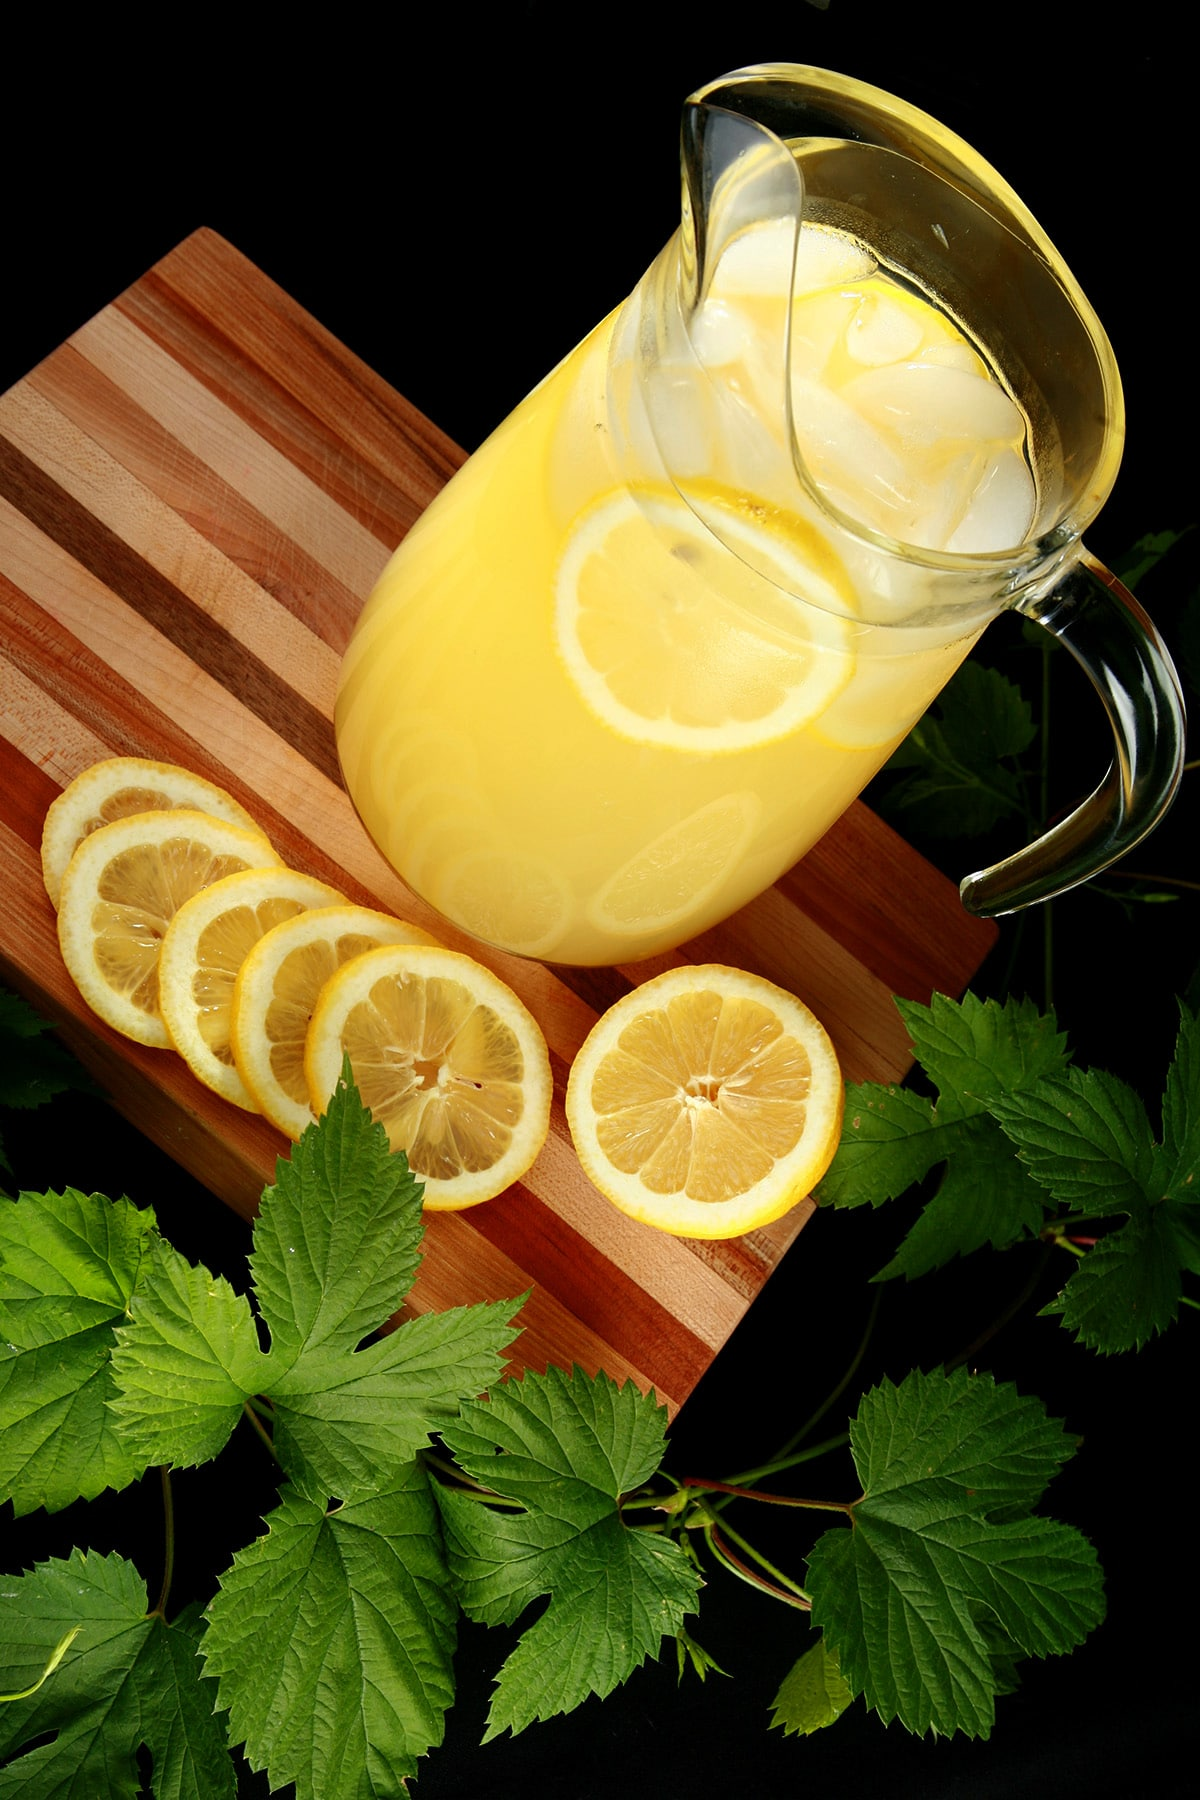 A pitcher of hop lemonade rests on a wooden board, with slices lemons and a hop bine next to it.